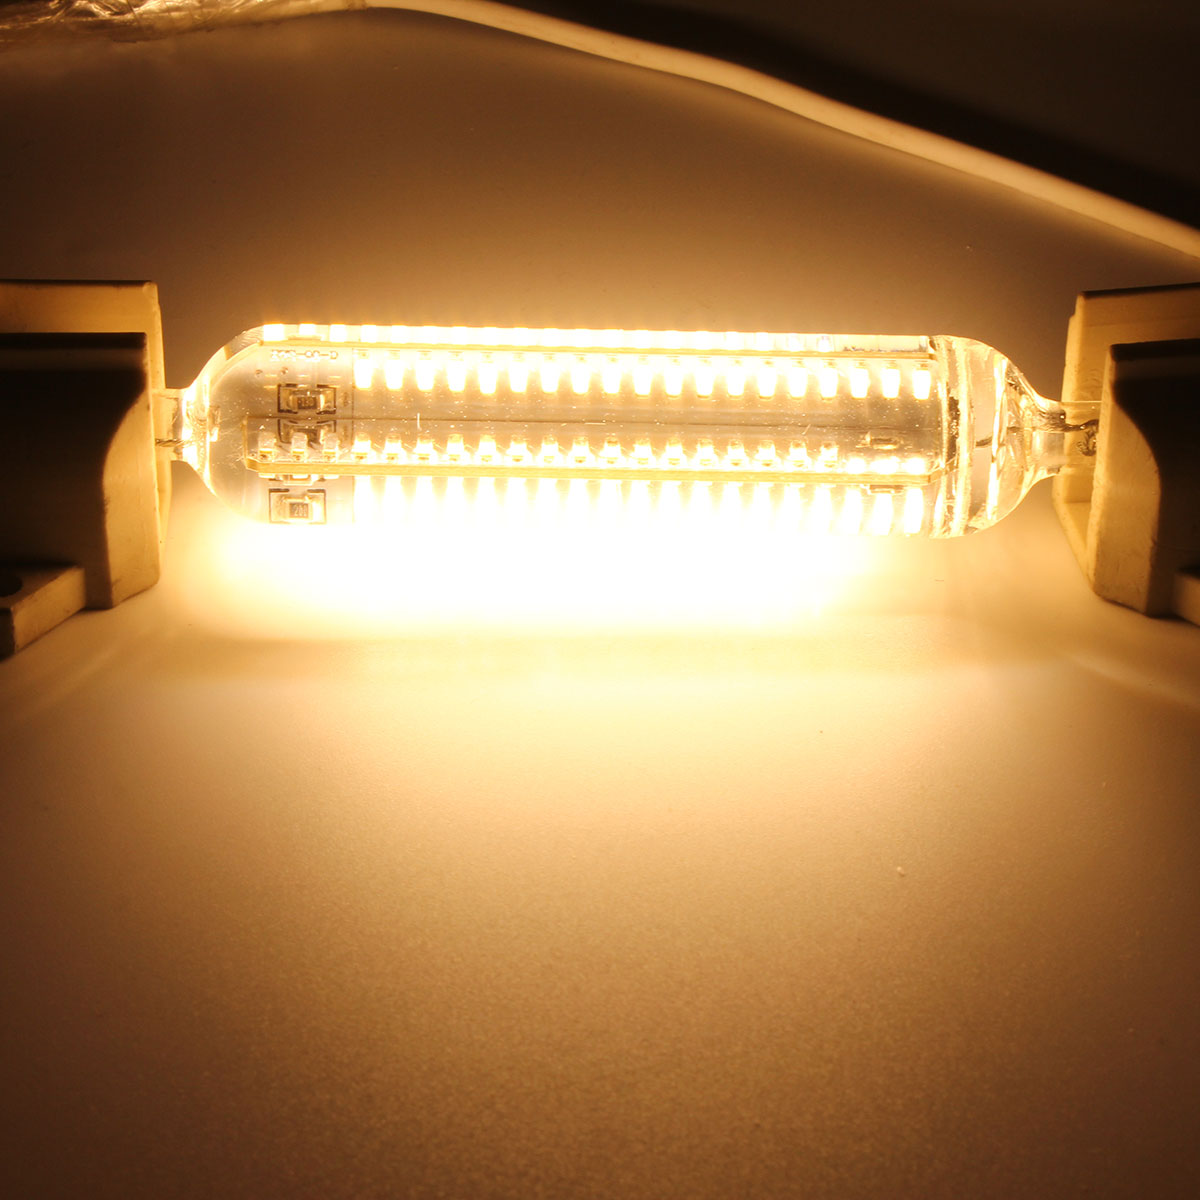 Led Warmes Licht Dimmbare R7s 118mm 10w 152 Smd 4014 Led Pure White Warmes